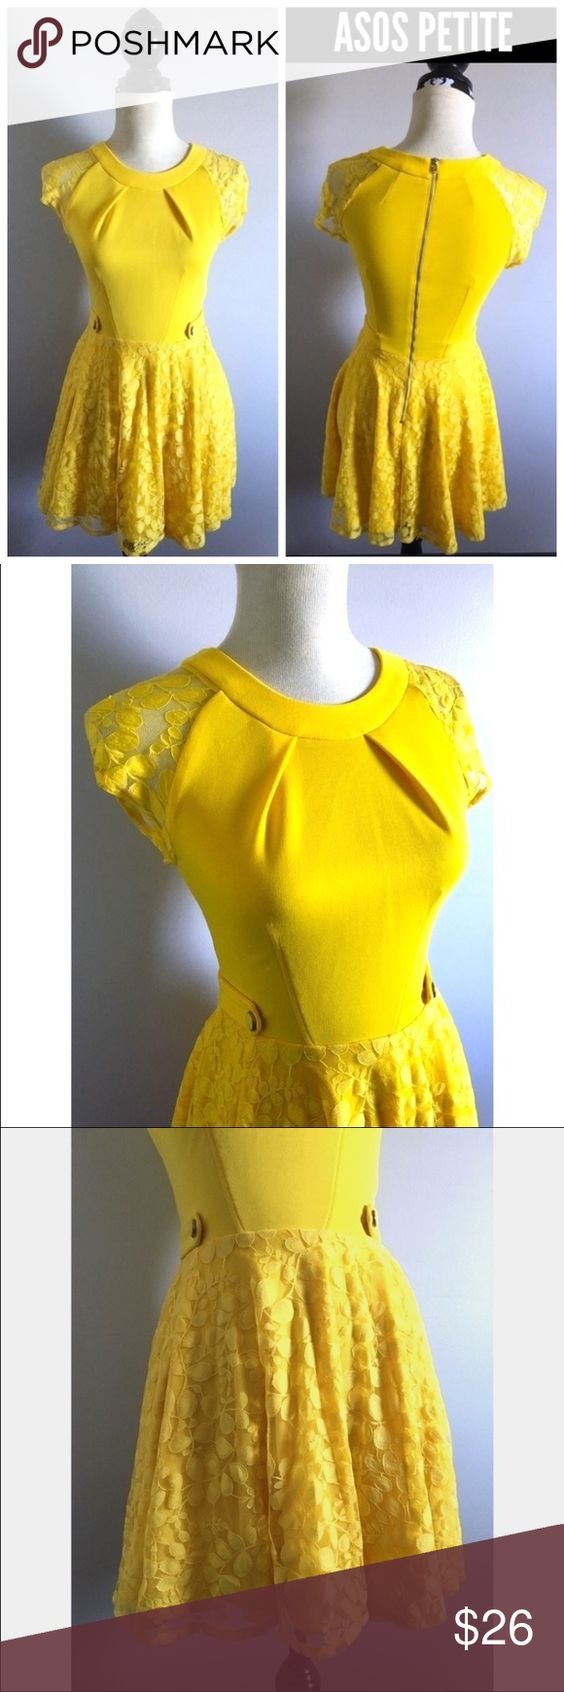 """ASOS Petite yellow lace skater dress Bust-32-34"""" Length-35""""  Sz 2  Super cute dress with sequin trims and side cut outs.  Only selling  #dress #cutout #skaterdress #navy ASOS Petite Dresses Mini"""